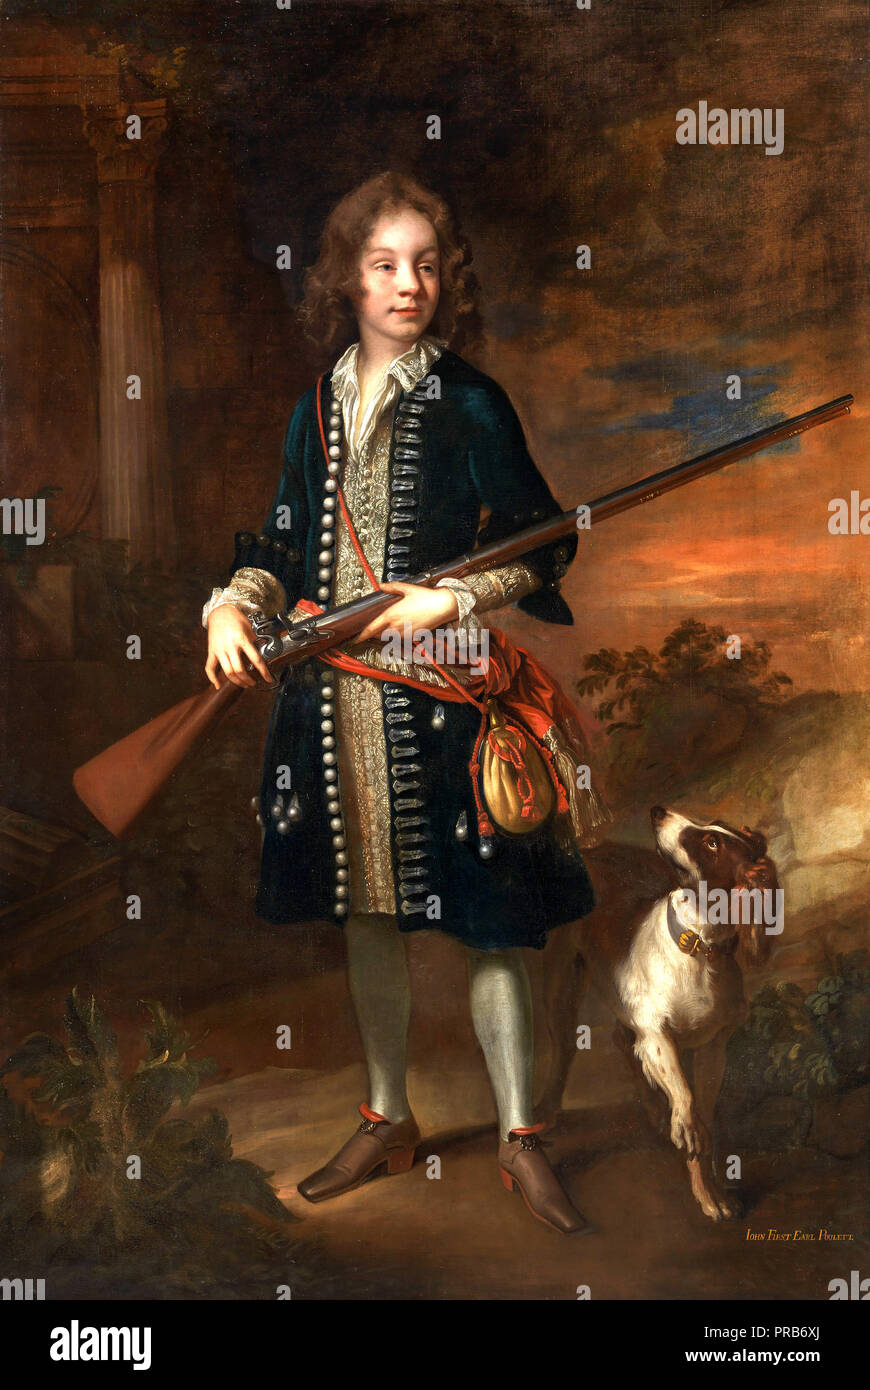 John Closterman, John Poulett, 1st Earl Poulett, Circa 1680, Oil on canvas, Yale Center for British Art, New Haven, USA. - Stock Image